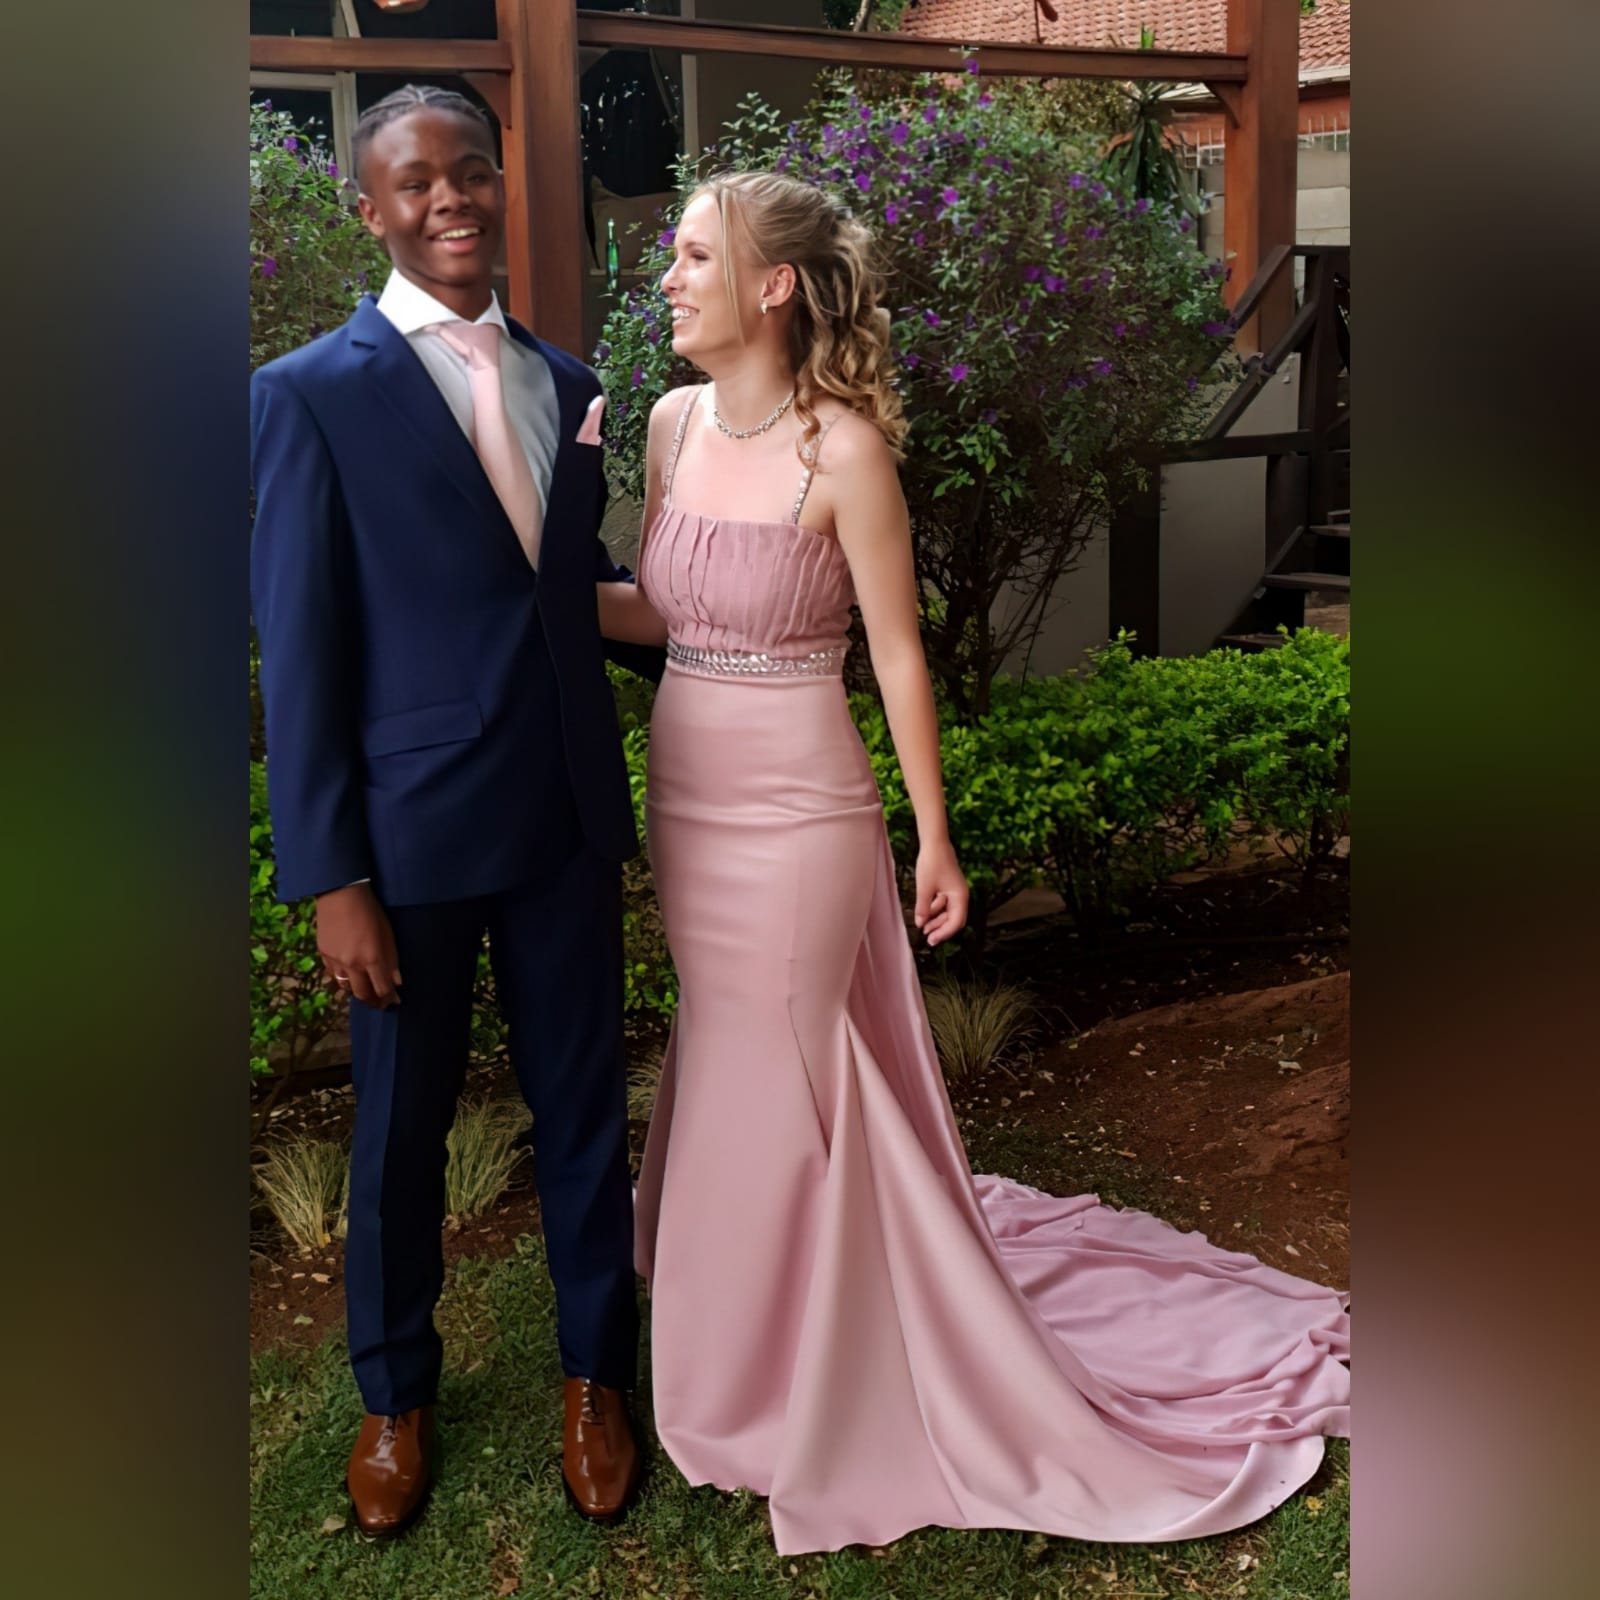 Dusty pink soft mermaid prom dress with a pleated bodice 9 dusty pink soft mermaid prom dress with a pleated bodice, with a train. Extra detachable chiffon train with a beaded belt and removable shoulder straps